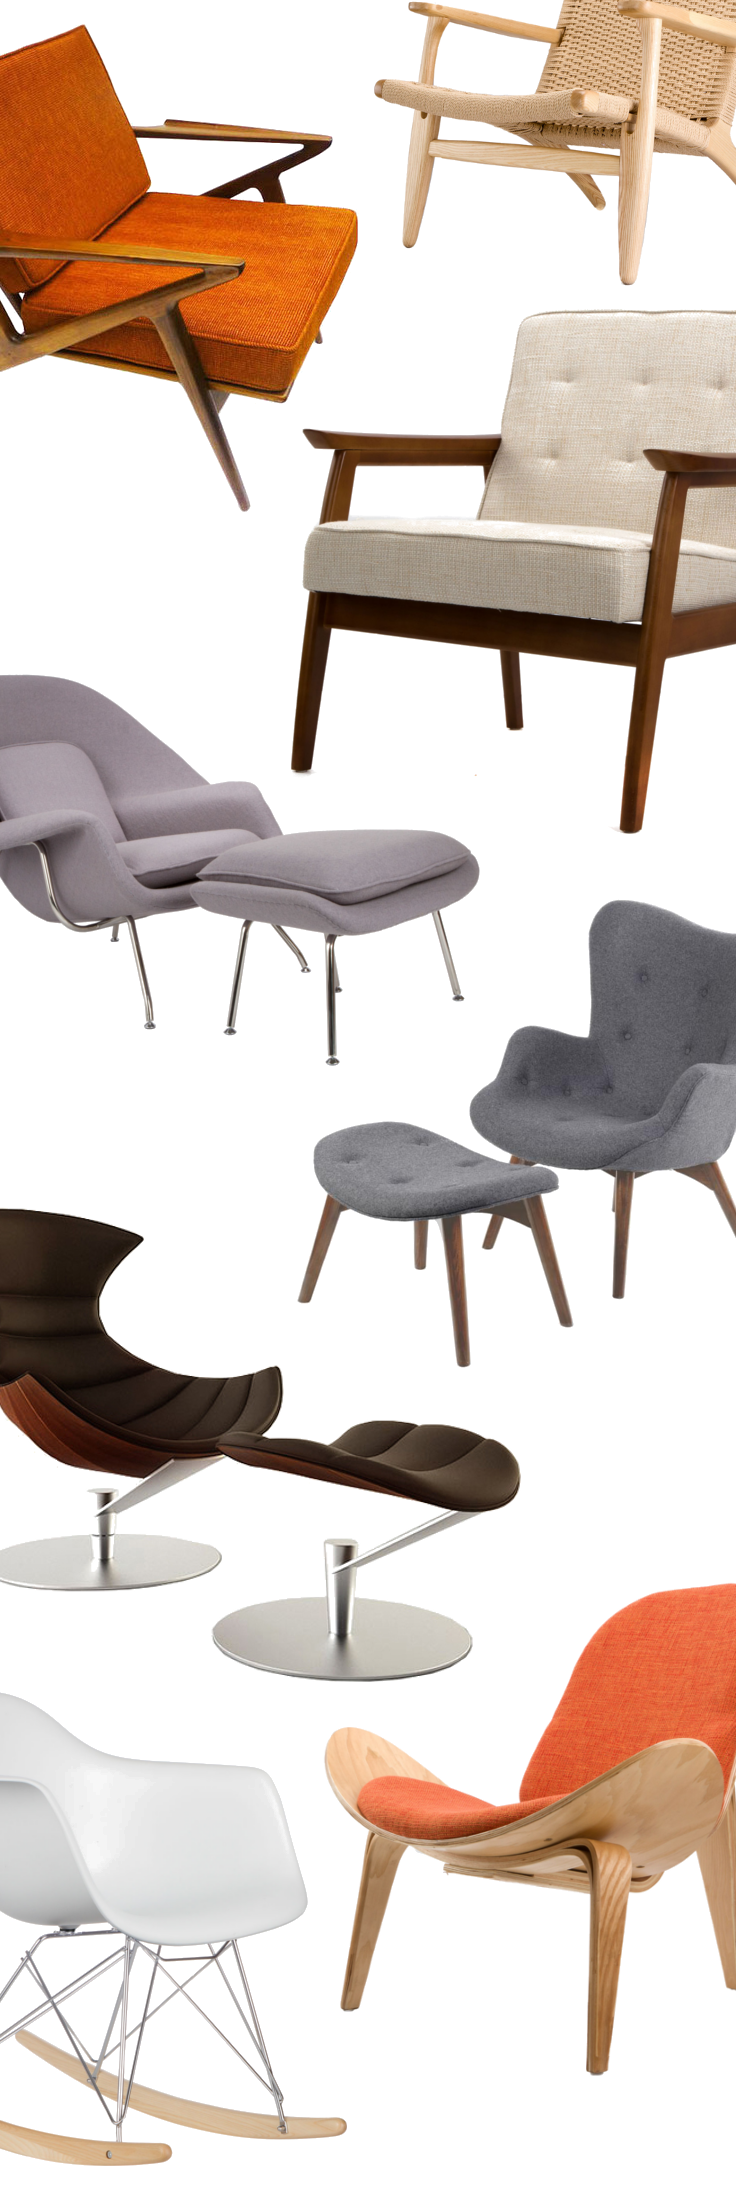 Furniture and décor for the modern lifestyle mid century modern